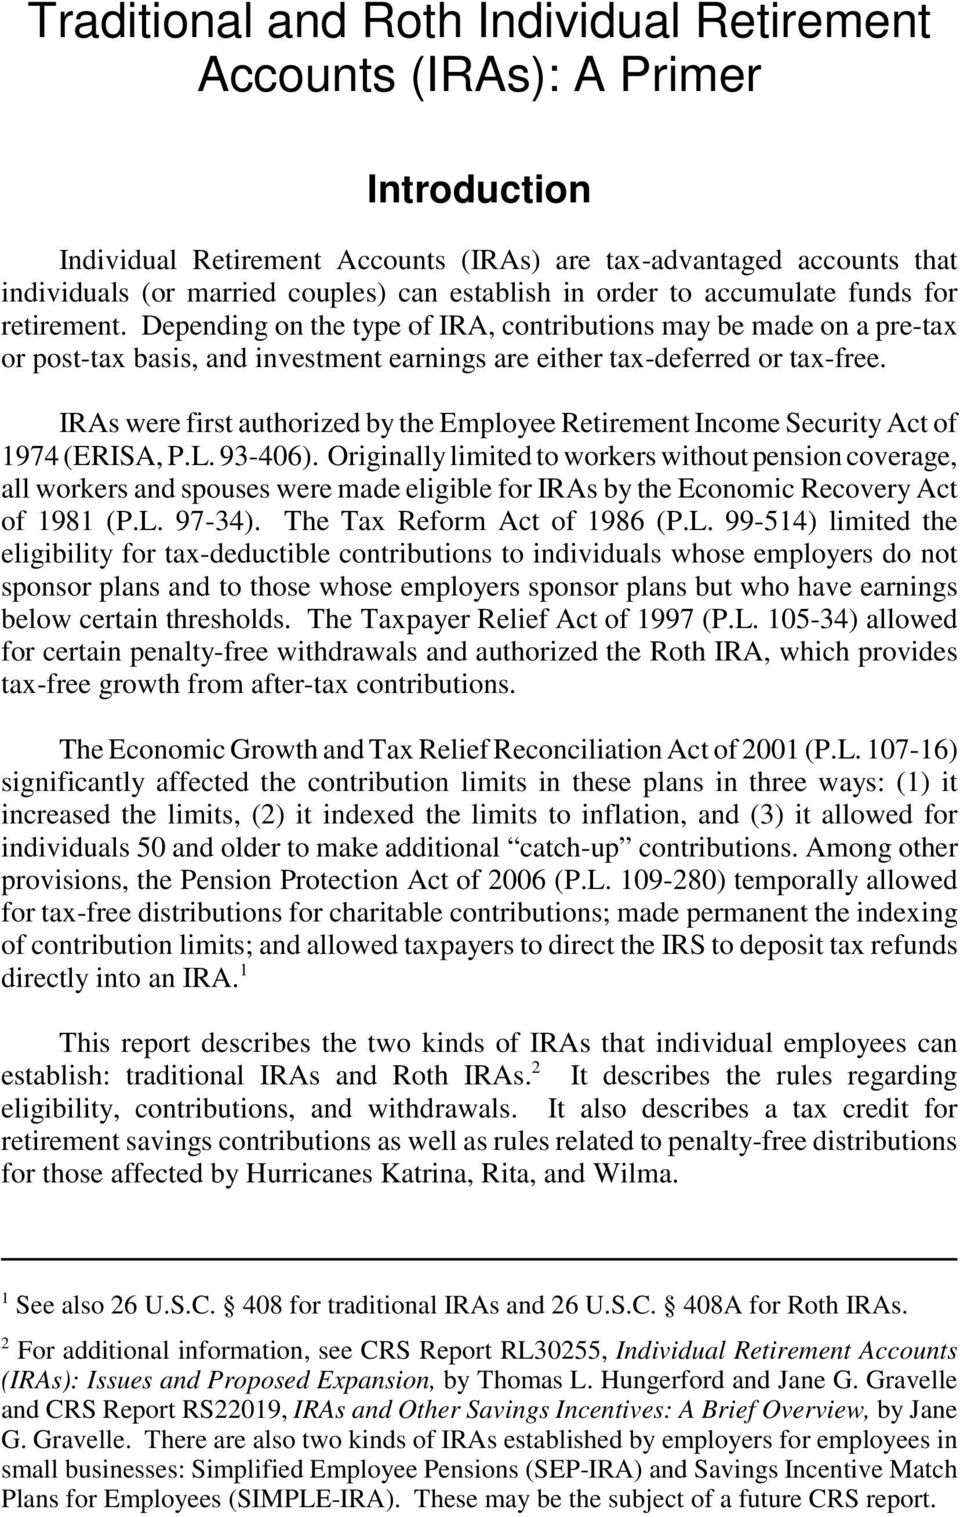 IRAs were first authorized by the Employee Retirement Income Security Act of 1974 (ERISA, P.L. 93-406).